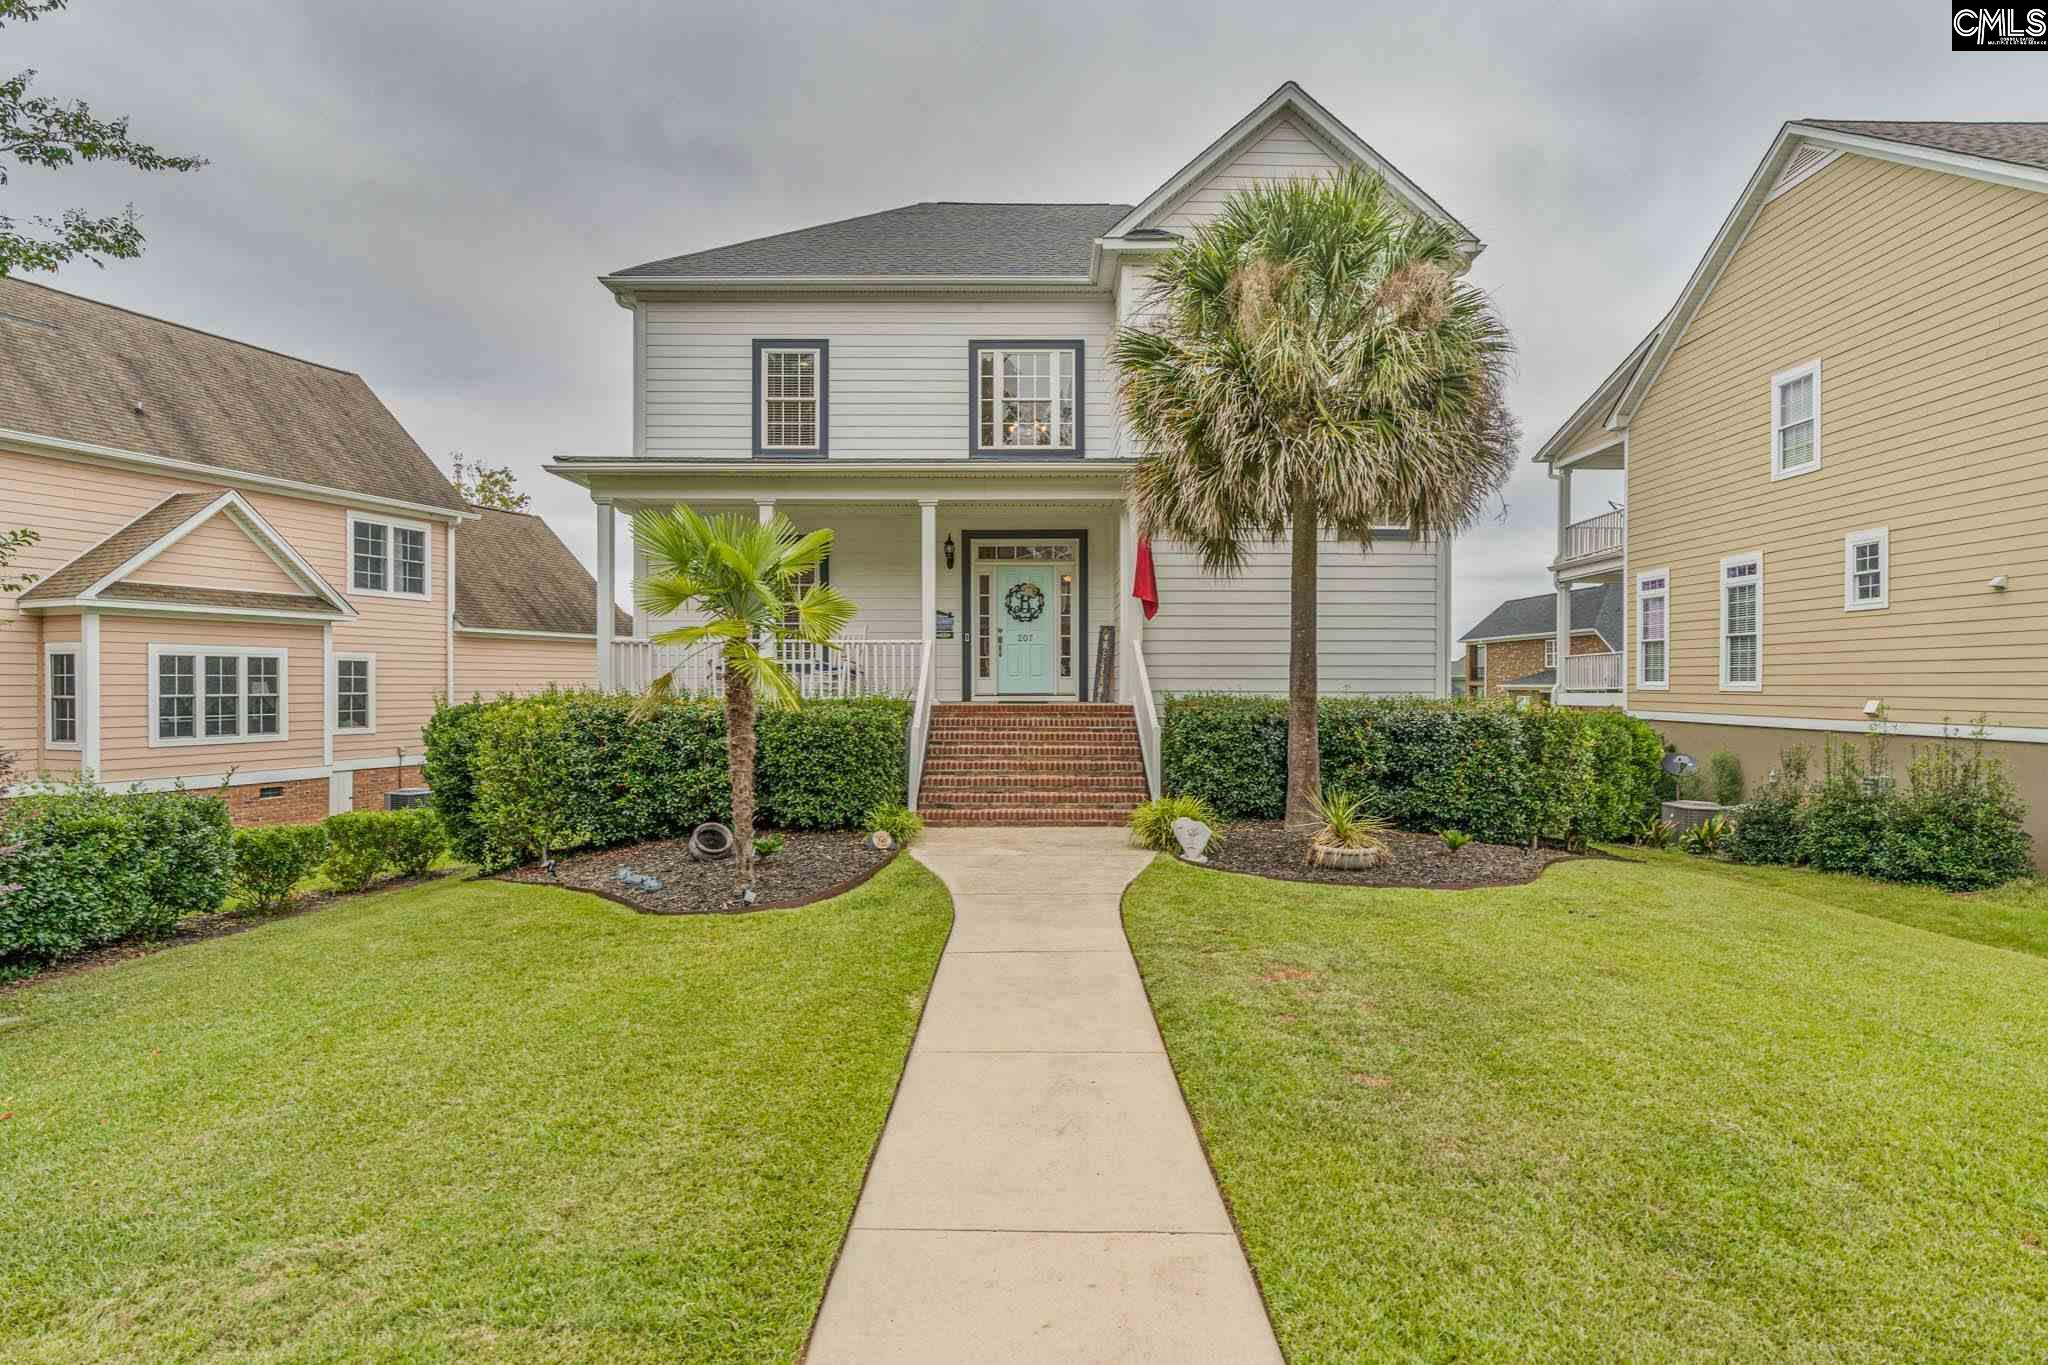 207 Harbor Vista Lexington, SC 29072